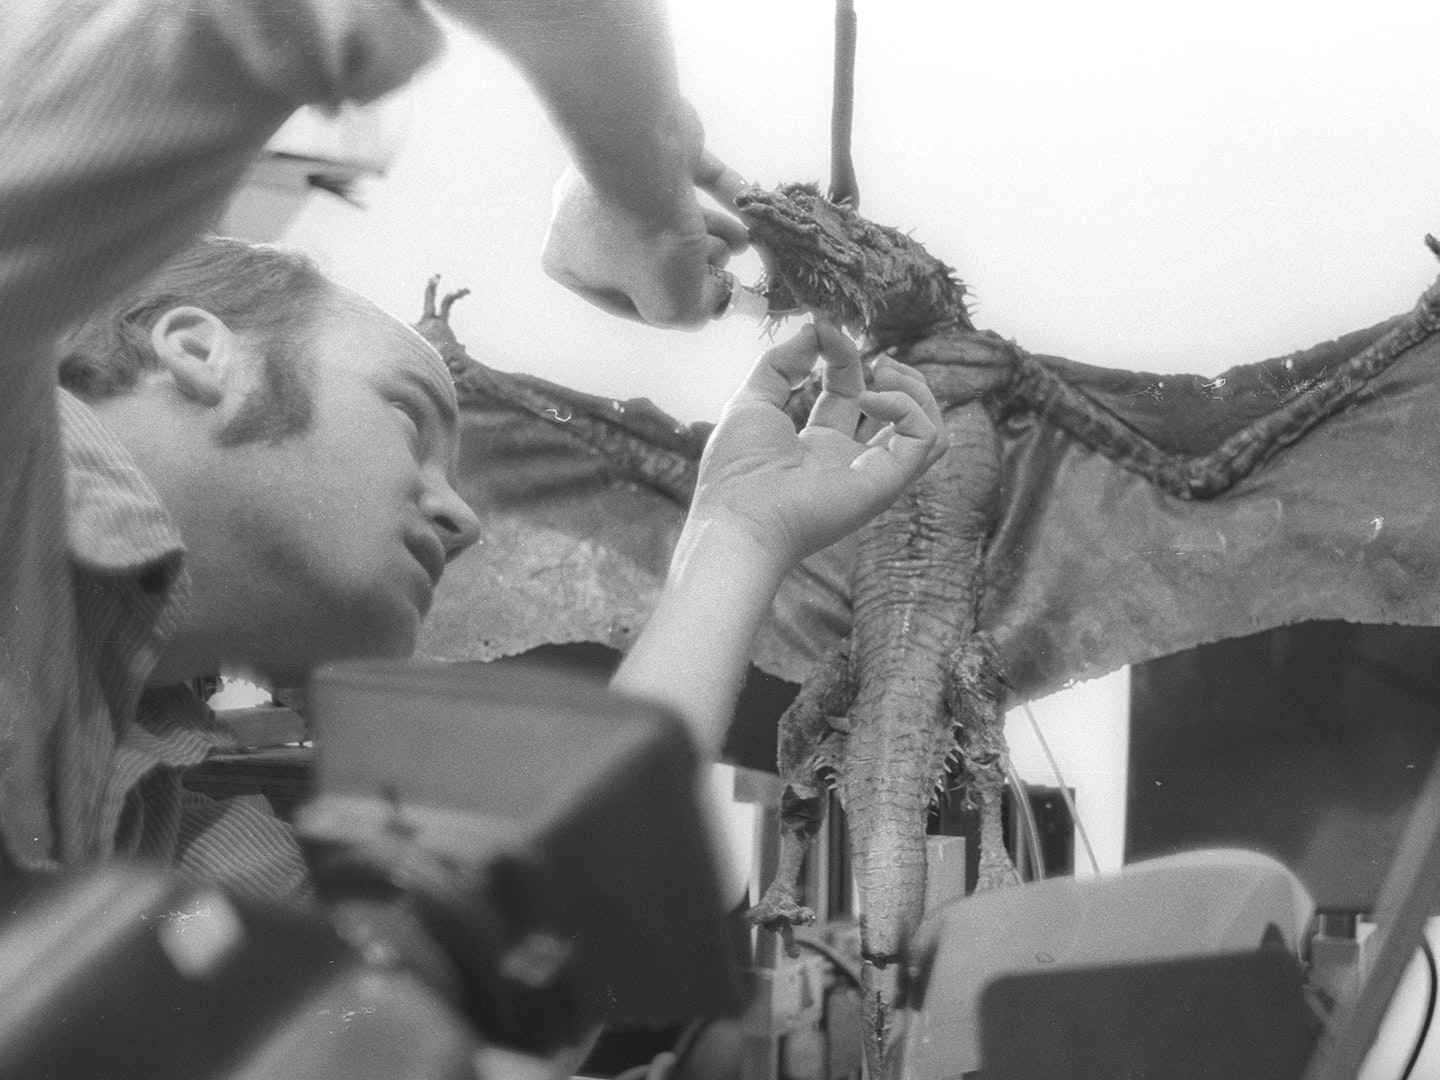 Phil Tippett works on the dragon puppet Vermithrax, which was brought to life with his Go-Motion technique.